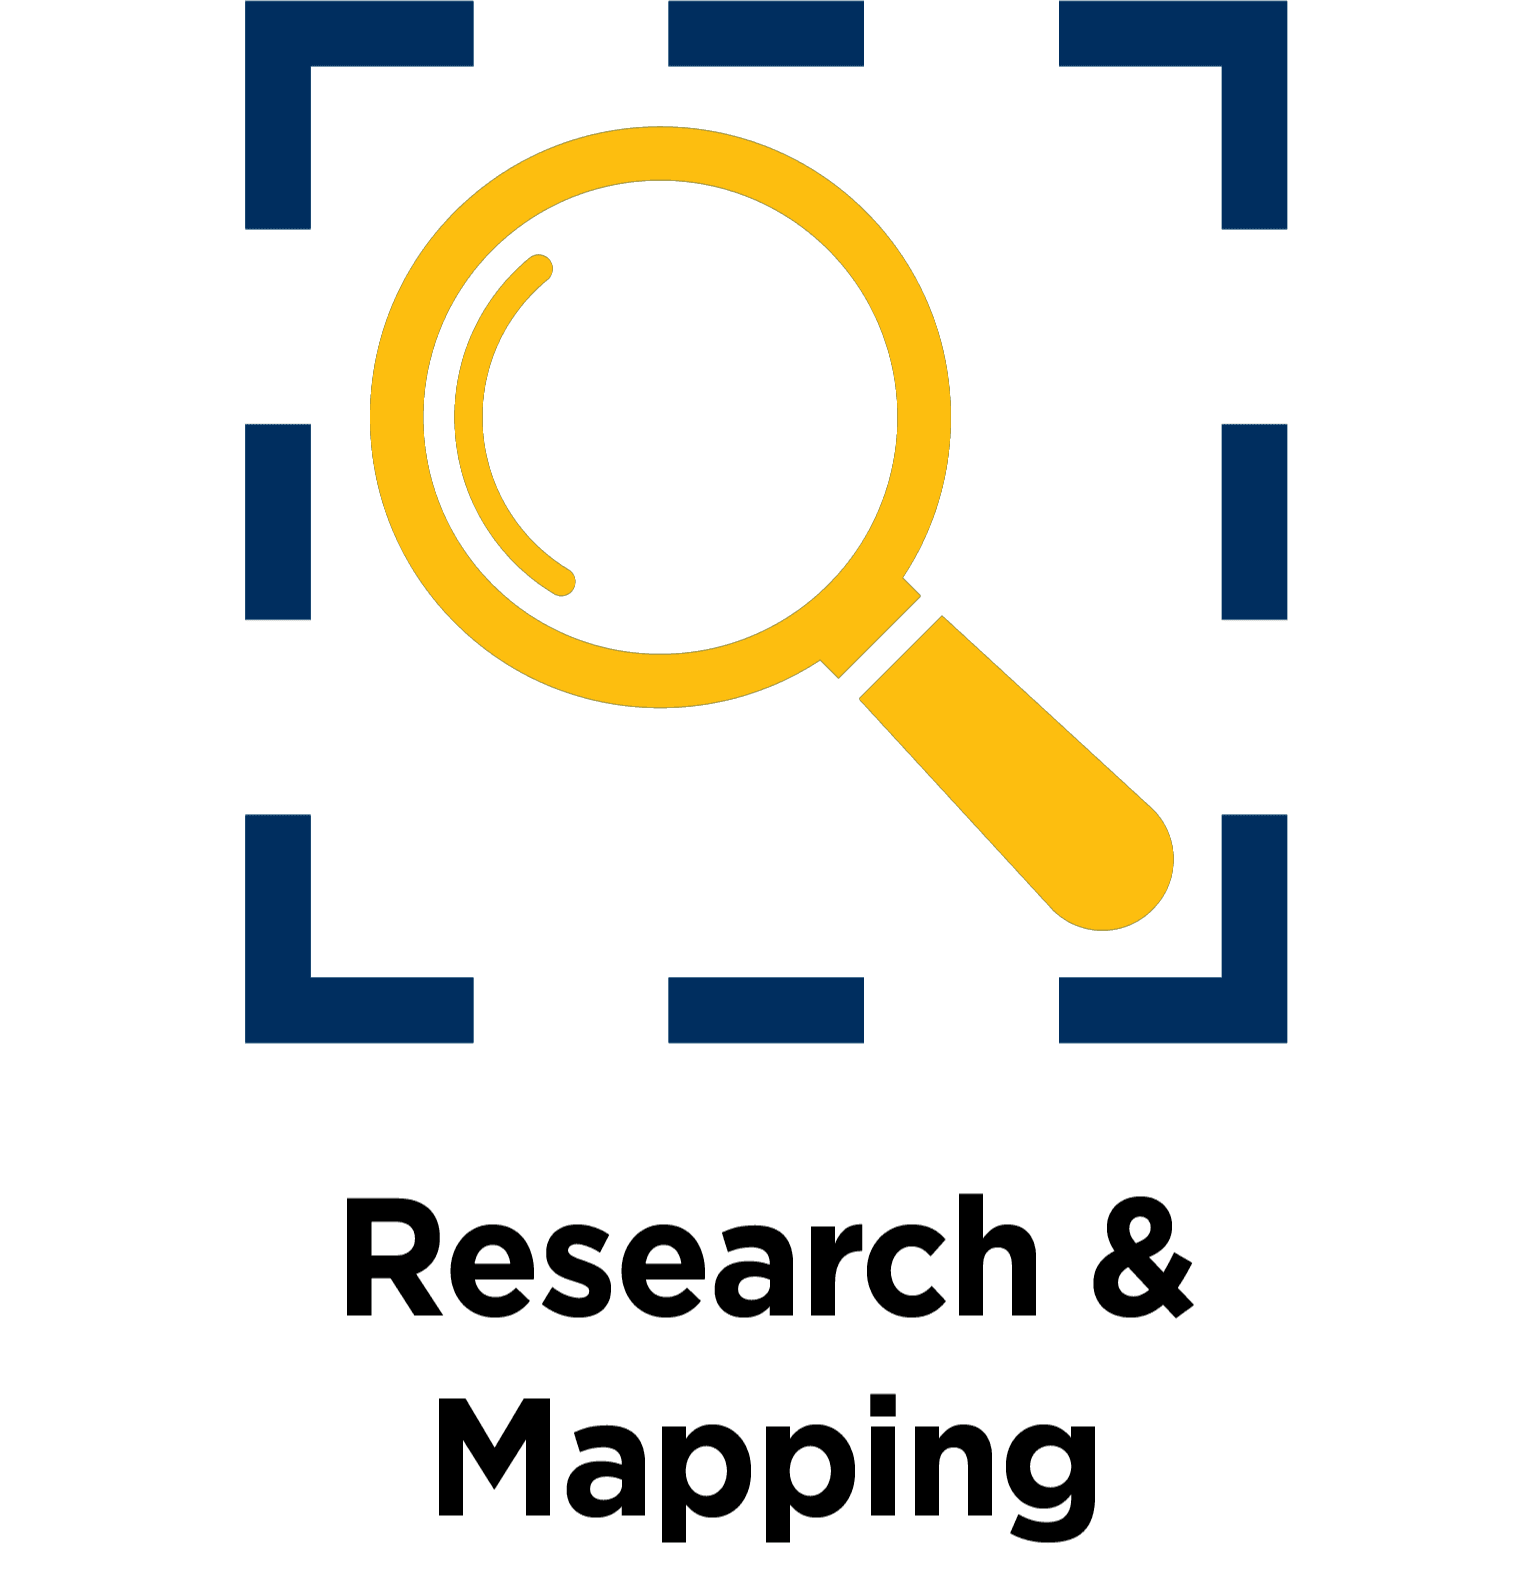 researchand mapping_00000